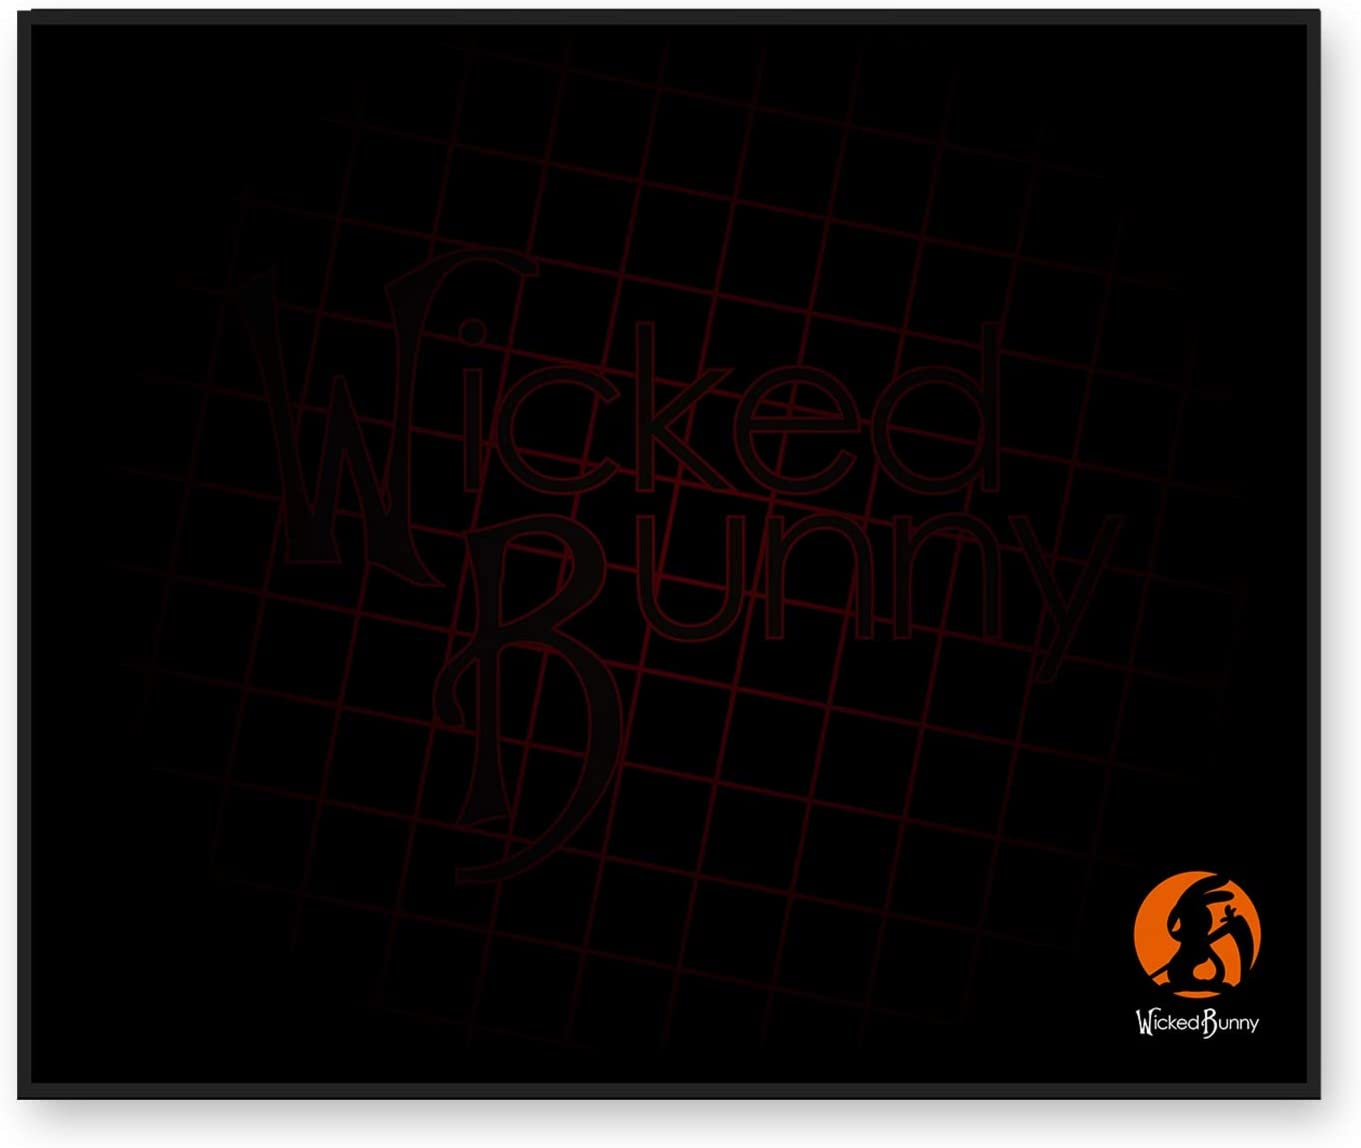 Water Proof and Flame Retardant Wicked Bunny Sprint Gaming Mouse Pad 900 x 410mm Anti Fraying with Three Sizes Available L Military Durability with Award Winning Cordura Fabric